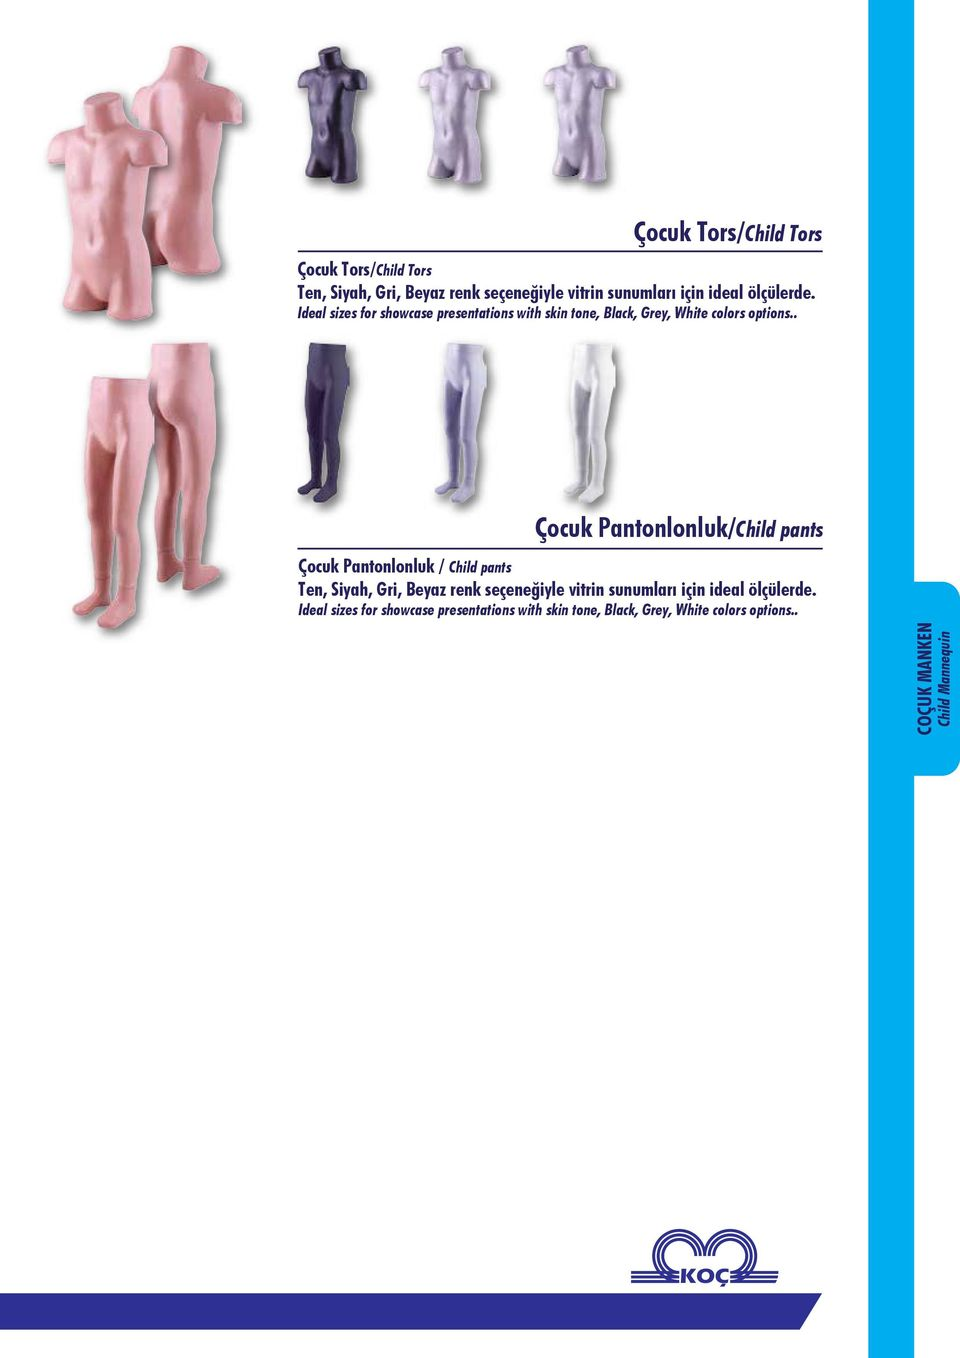 . Çocuk Pantonlonluk/Child pants Çocuk Pantonlonluk / Child pants Ideal sizes